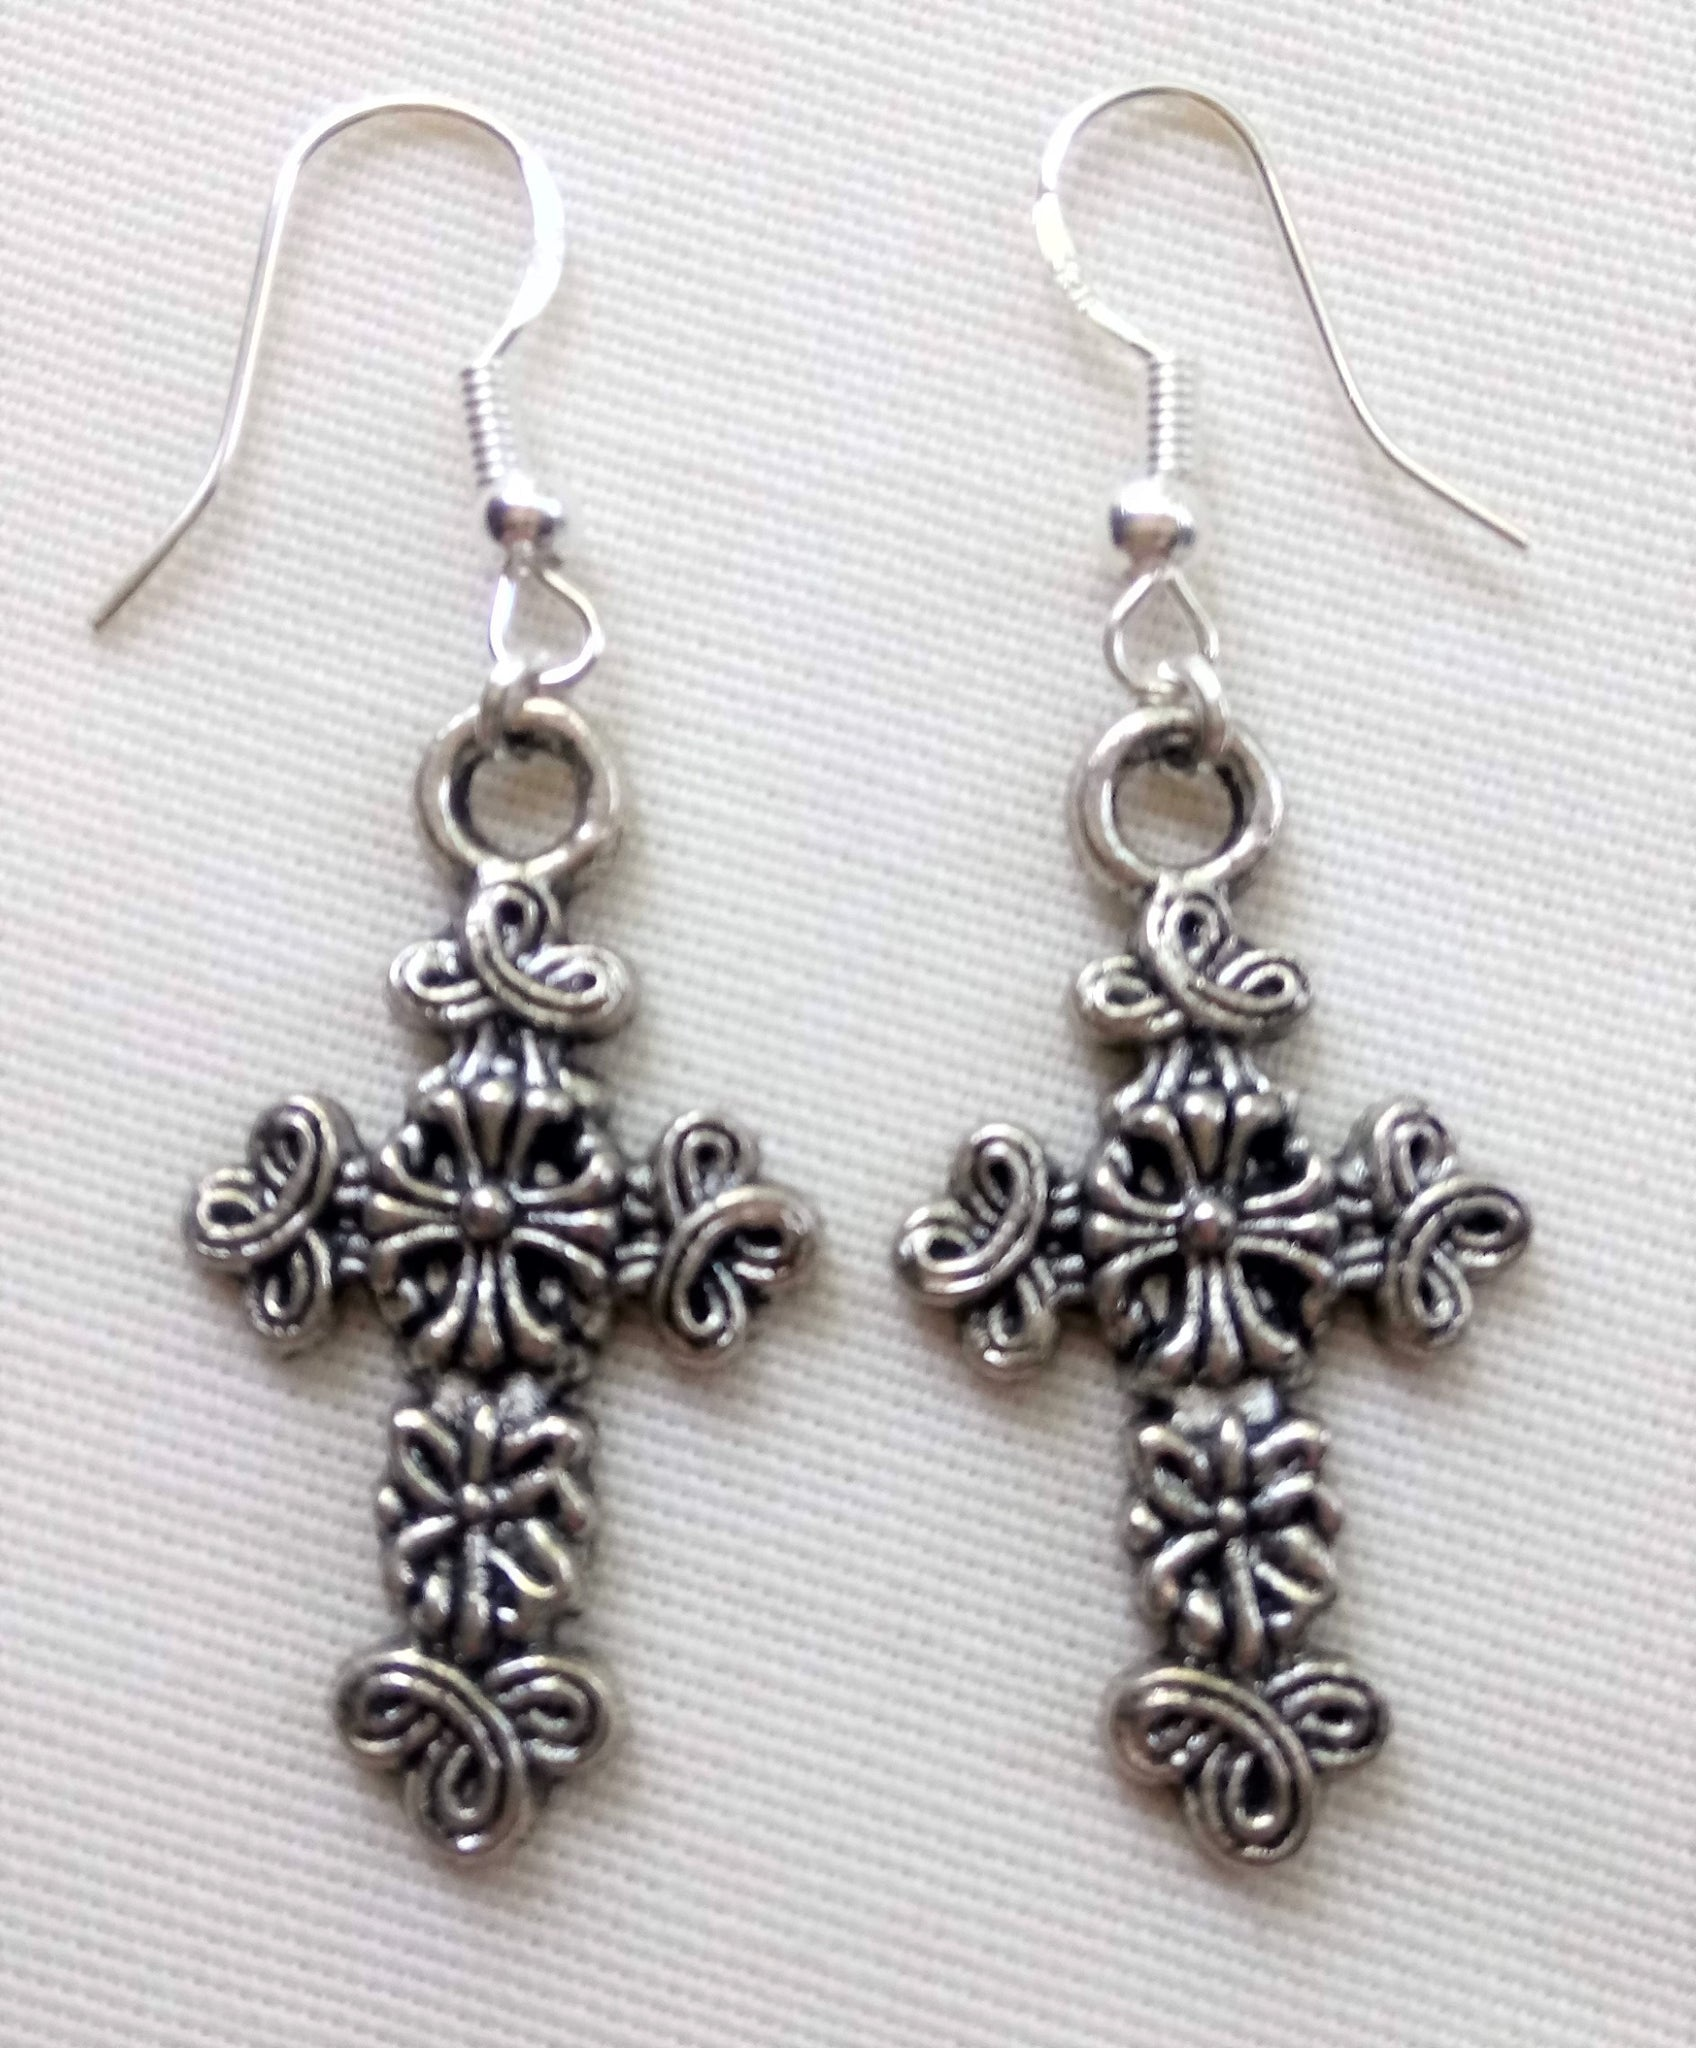 Ornate Cross Earrings